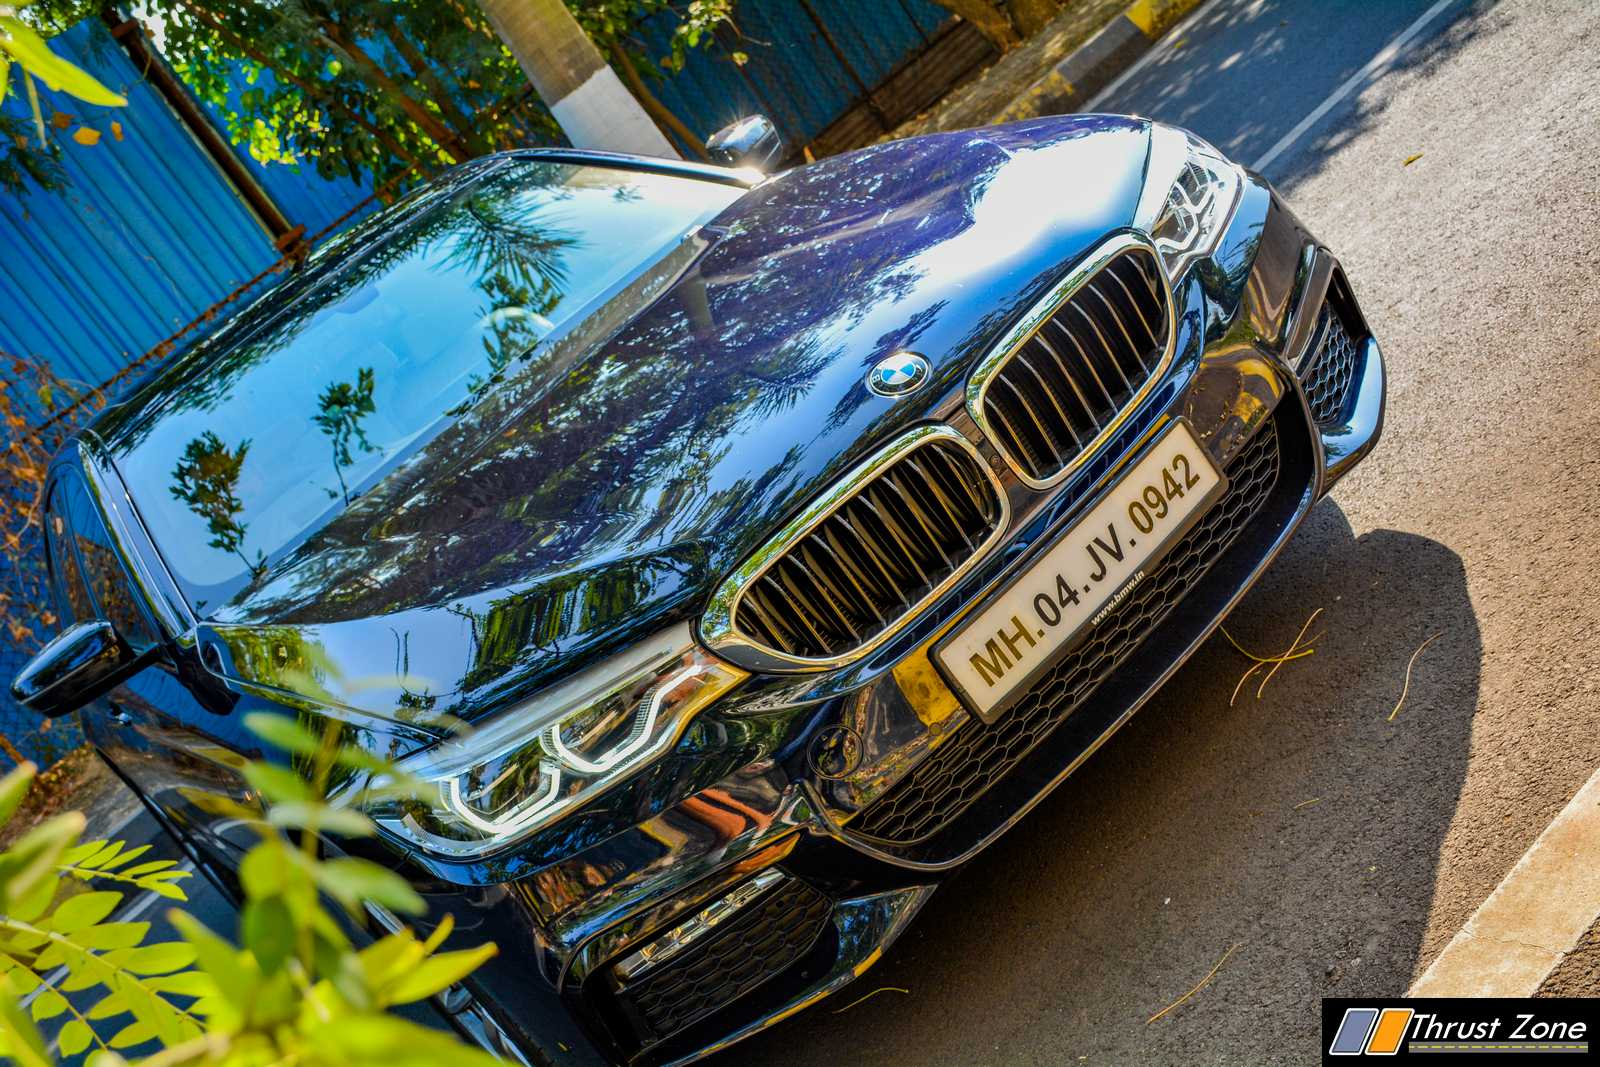 http://www.thrustzone.com/wp-content/uploads/2019/01/2018-BMW-530d-India-Review-20.jpg